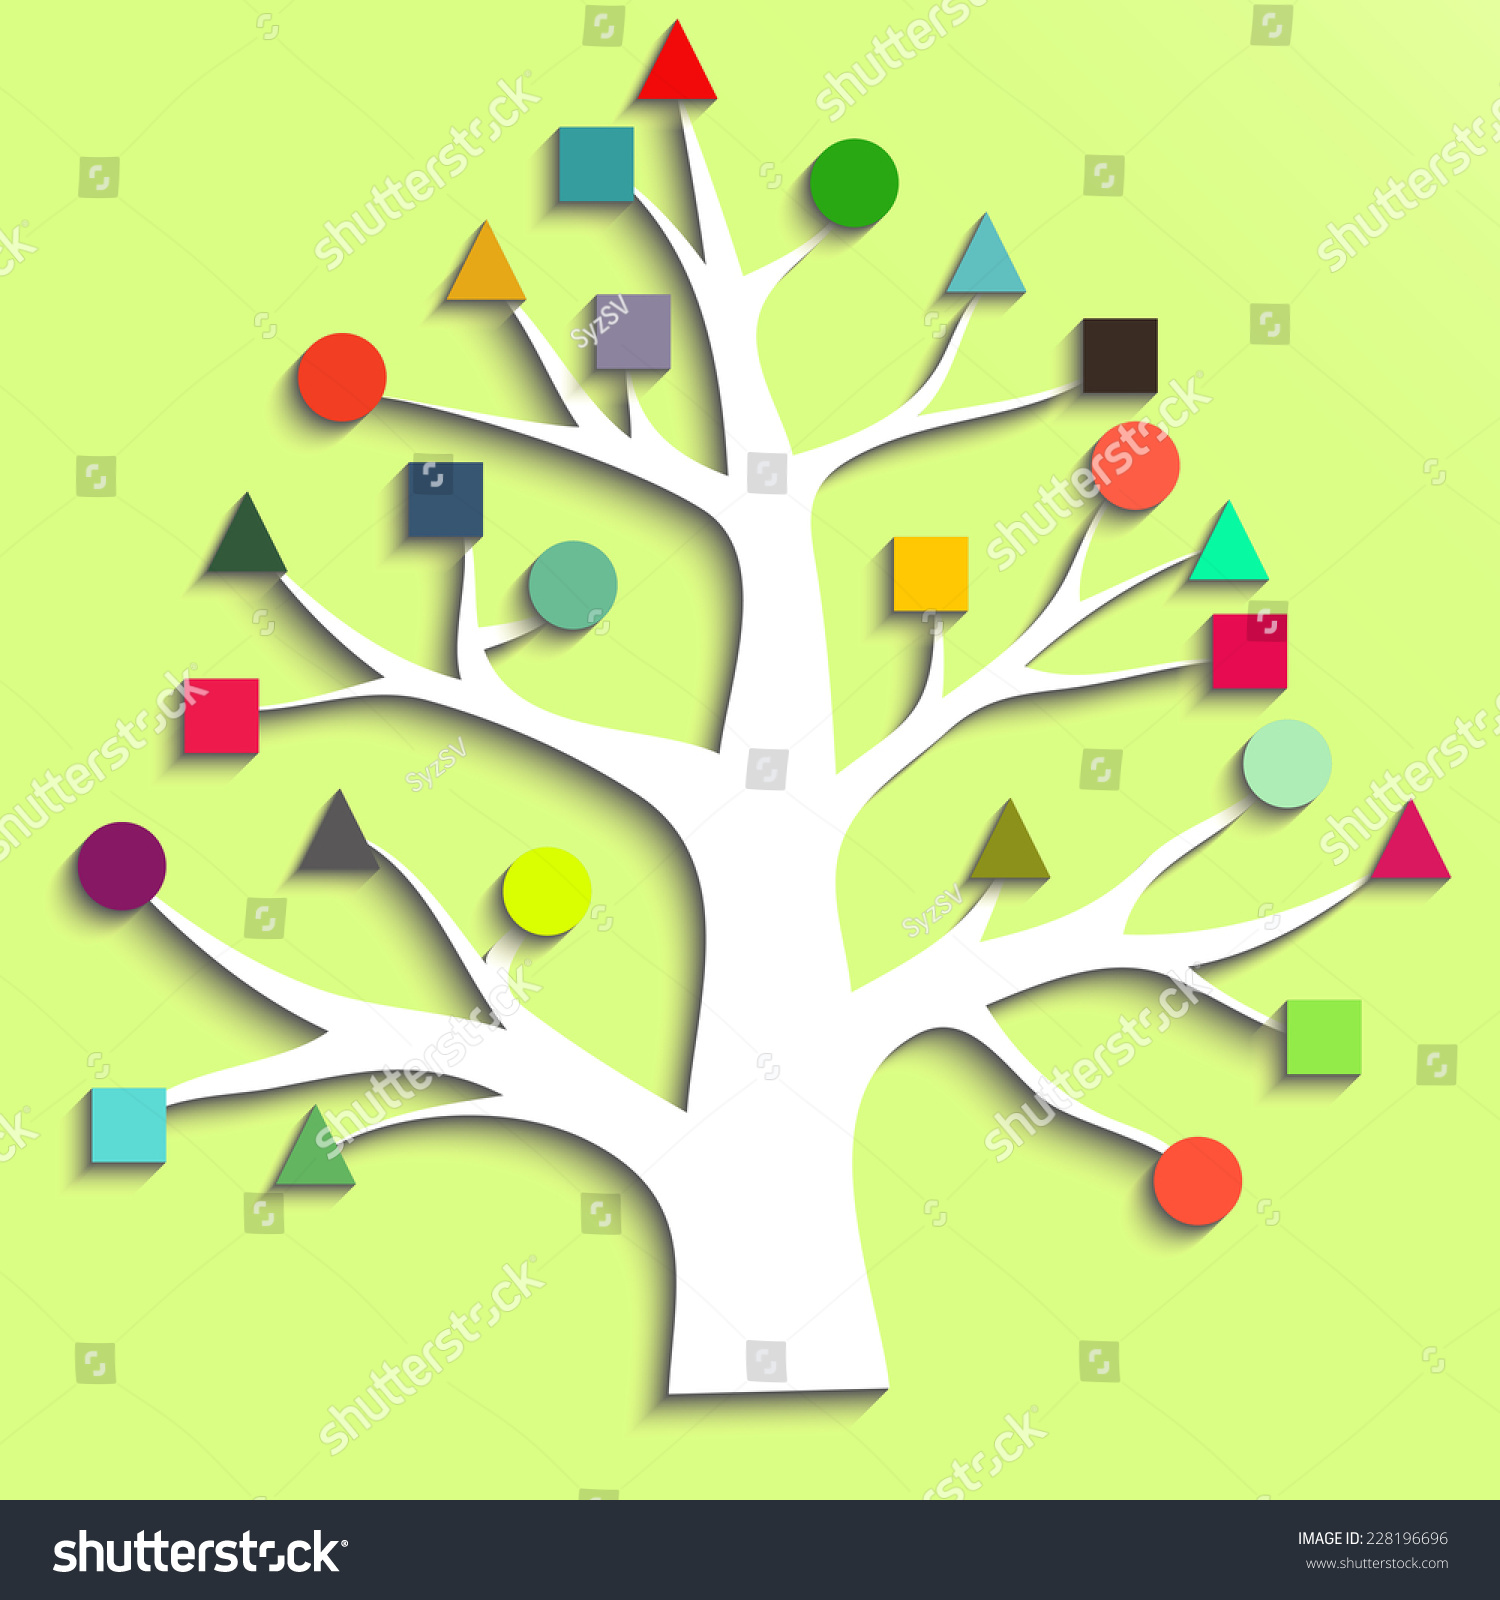 Abstract Tree With Colorful Leaves Of Geometric Shapes